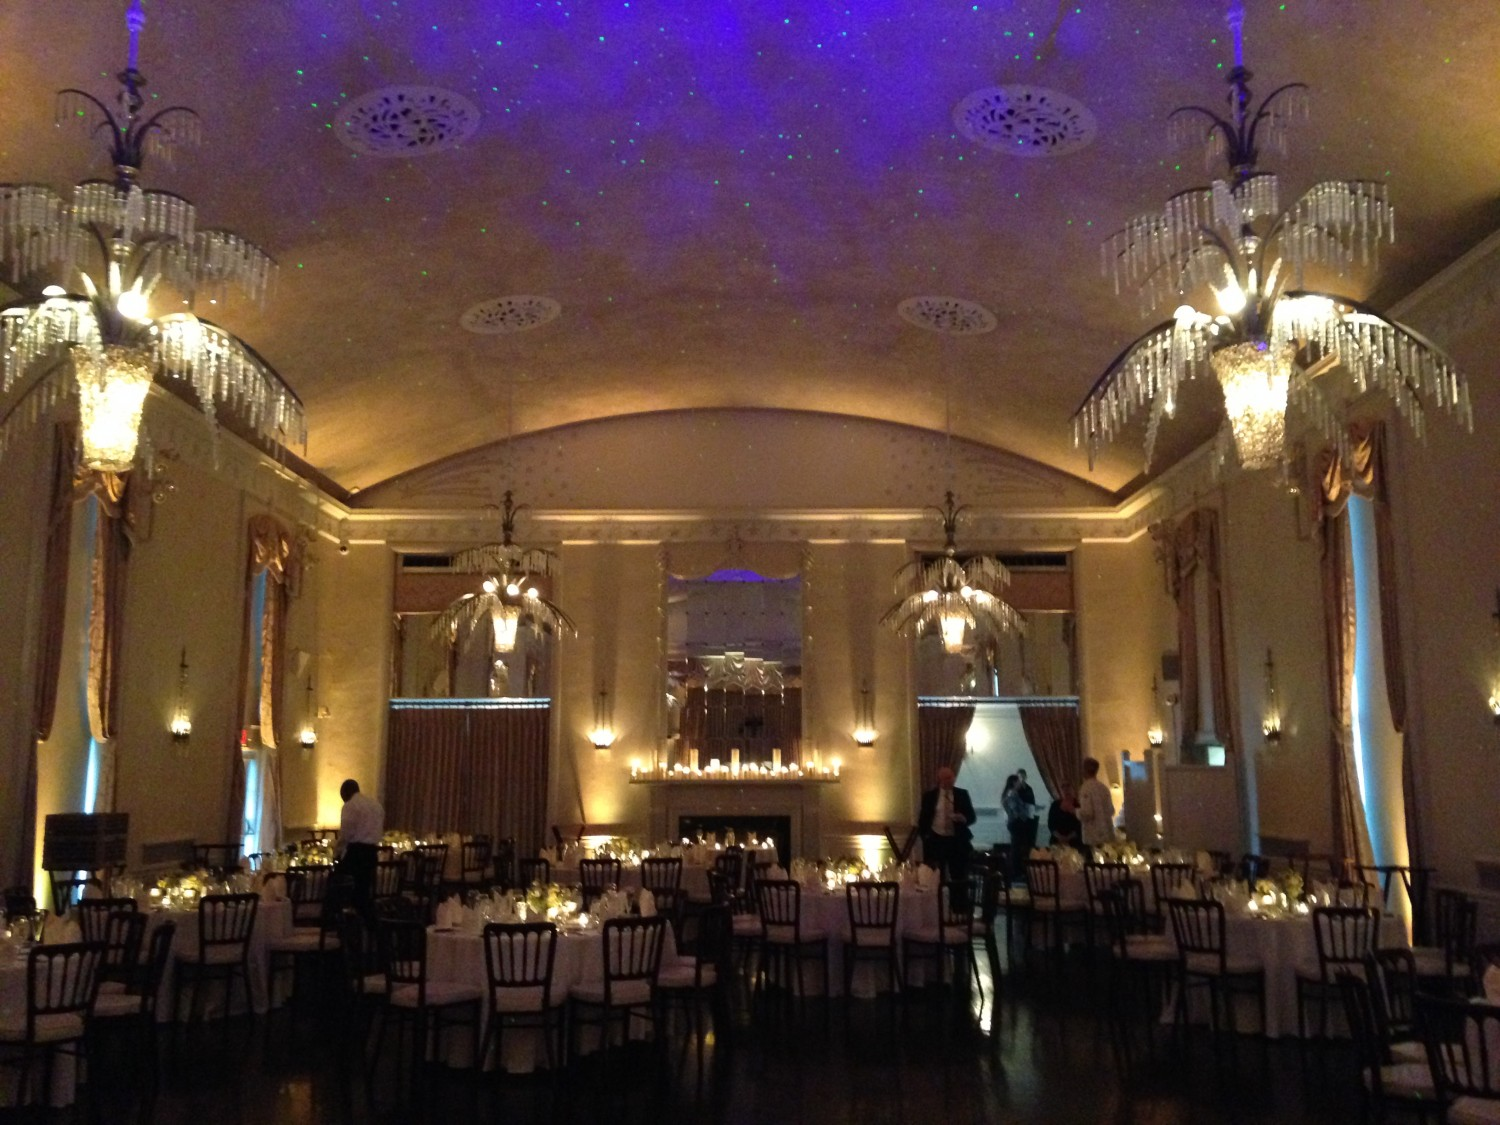 Lighting Creates The Mood And Environment Take Your Event From Average To Unforgettable With Amazing Options Dance Music